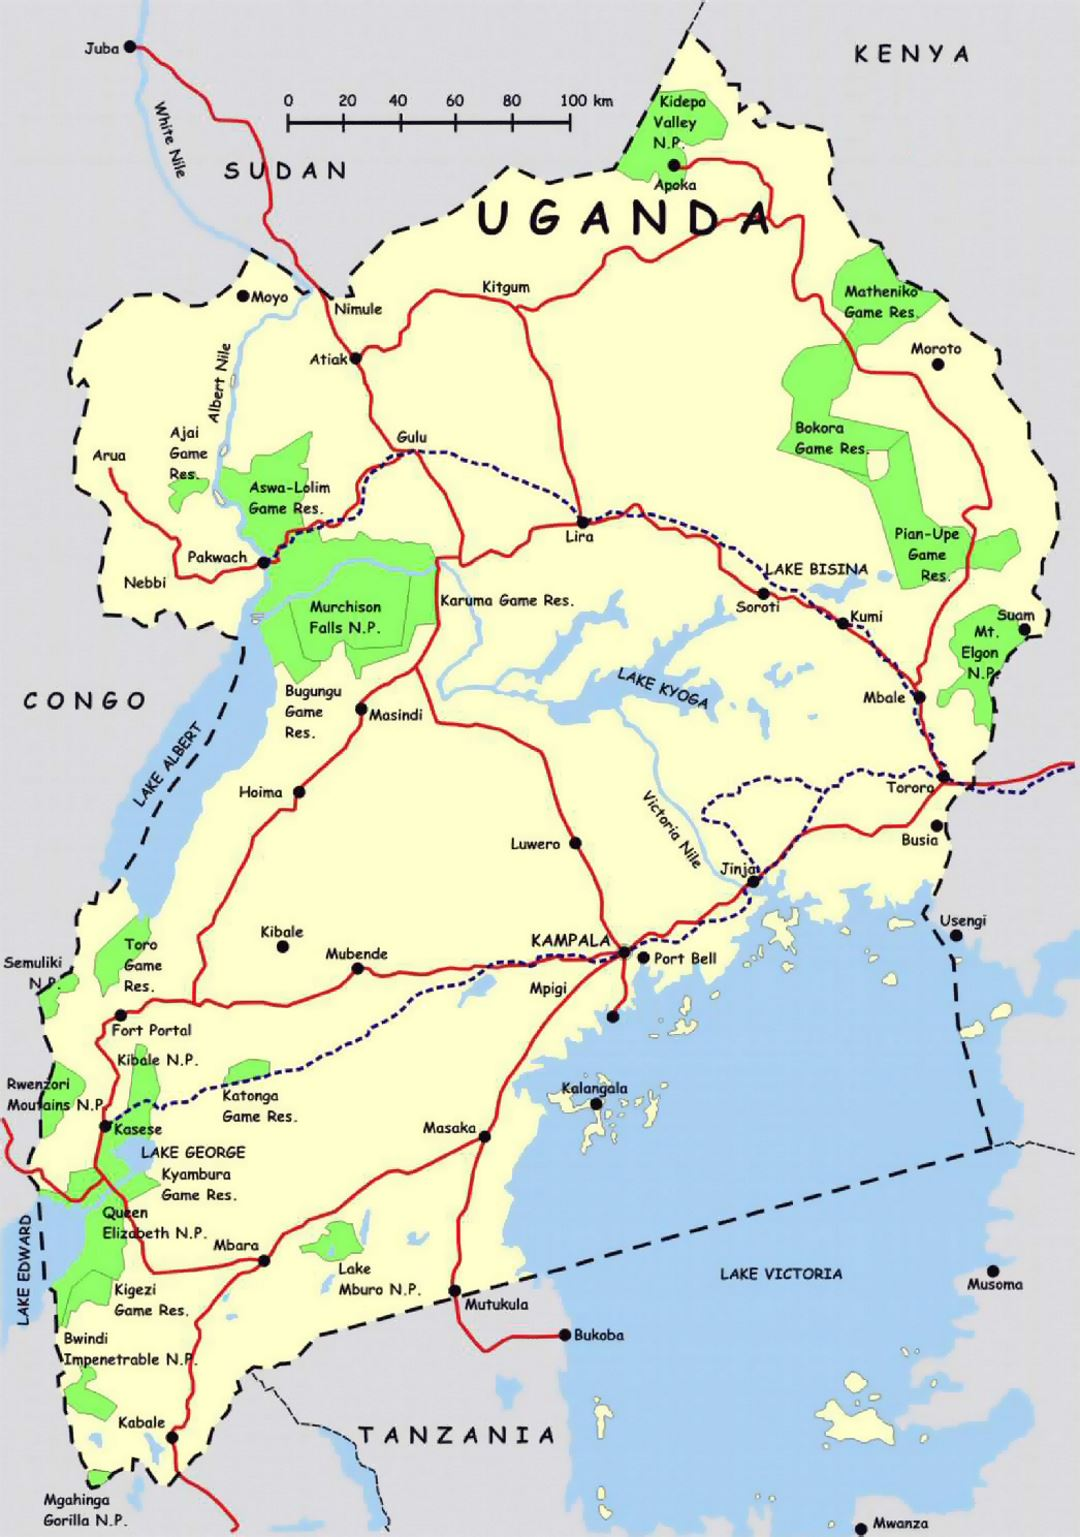 Detailed map of Uganda with highways and national parks